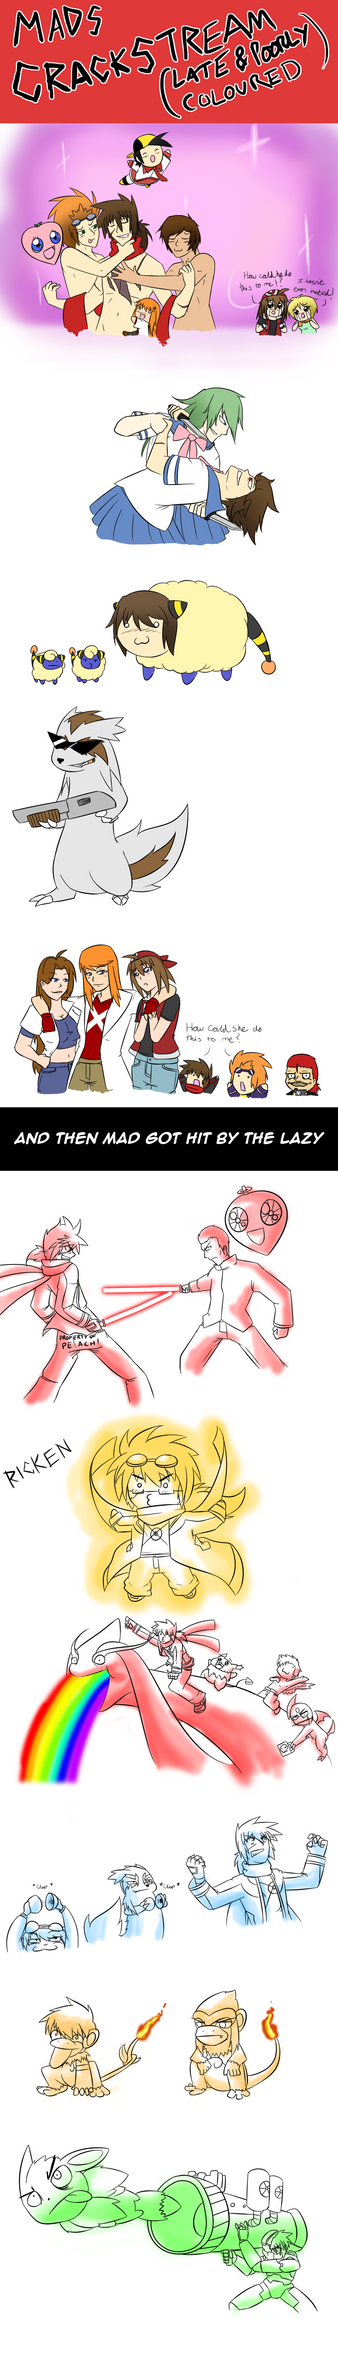 SUPER TERRIBLE AND LATE CRACKSTREAM! by Mad-Revolution